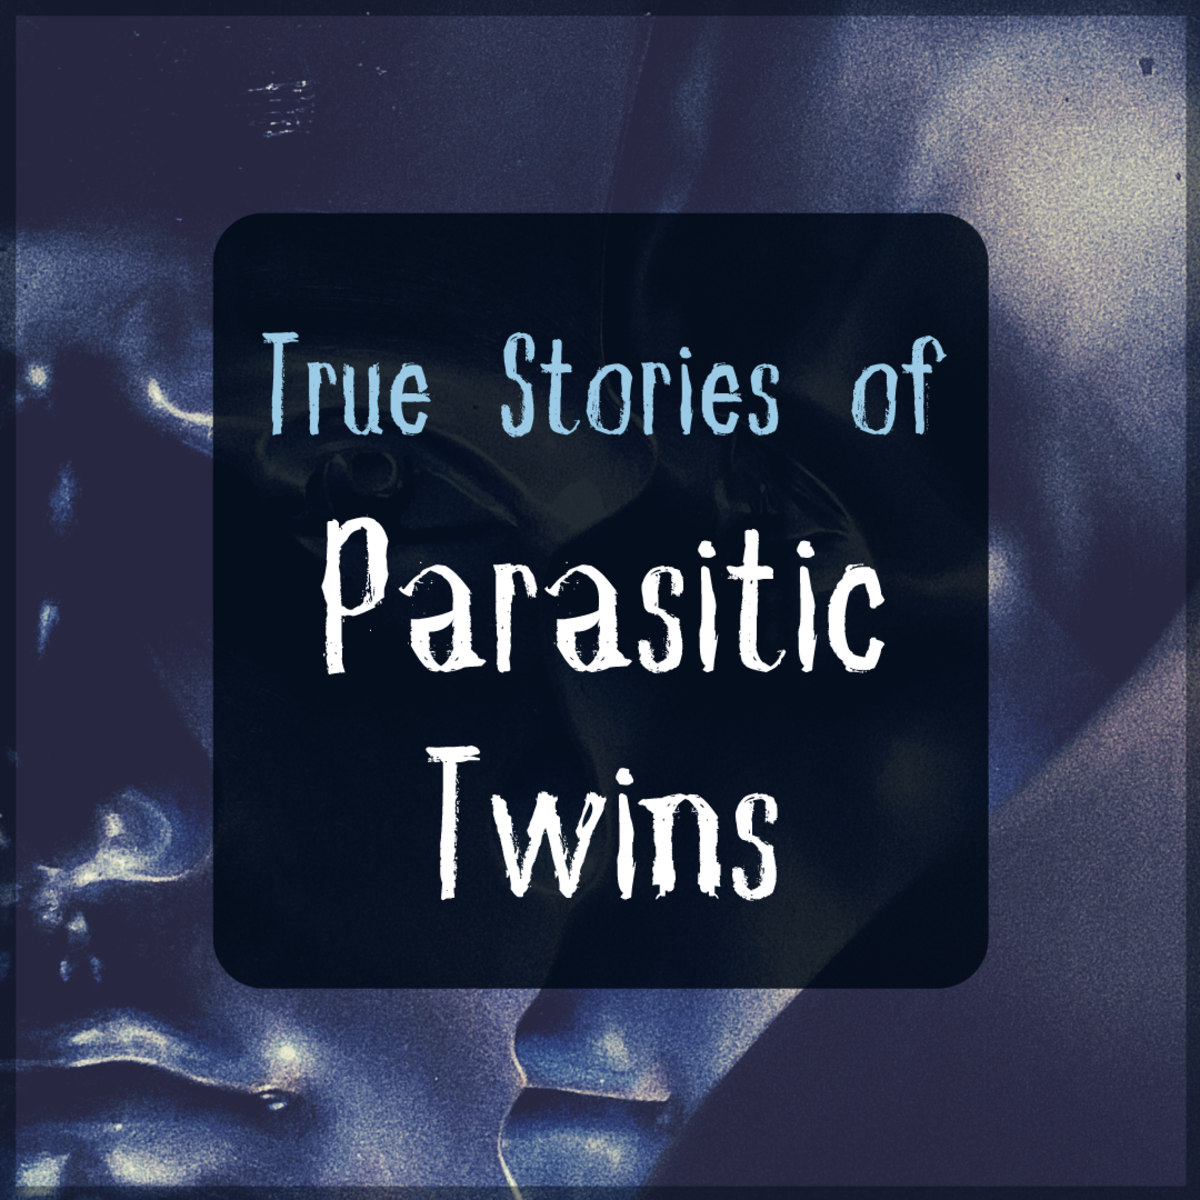 Explore some real-life accounts of parasitic twins.